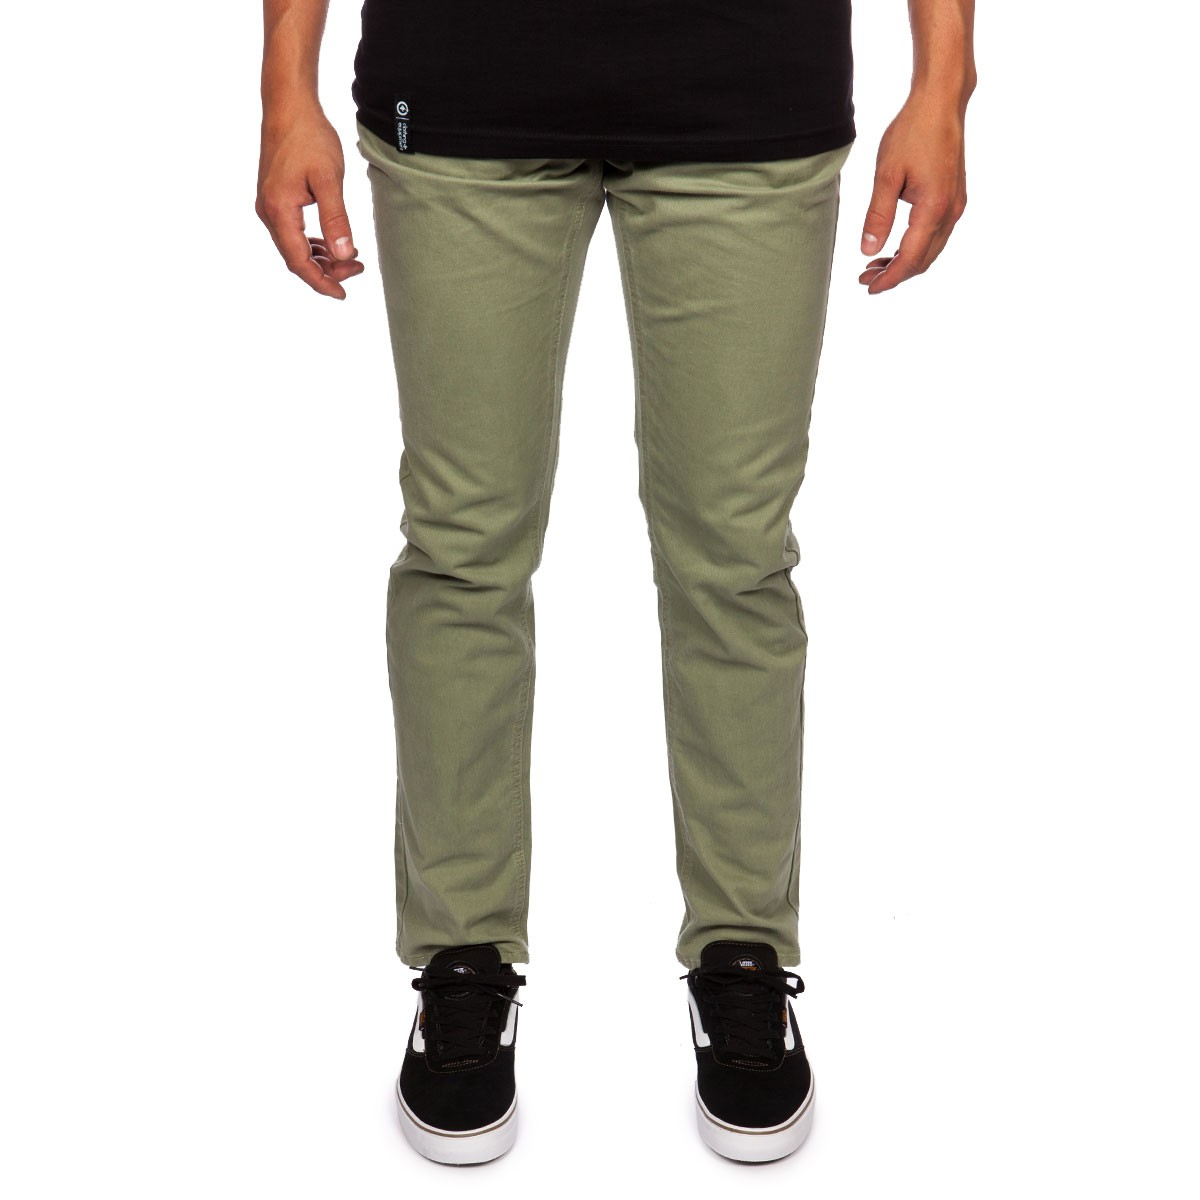 RVCA Stay RVCA Pants - Oil Green